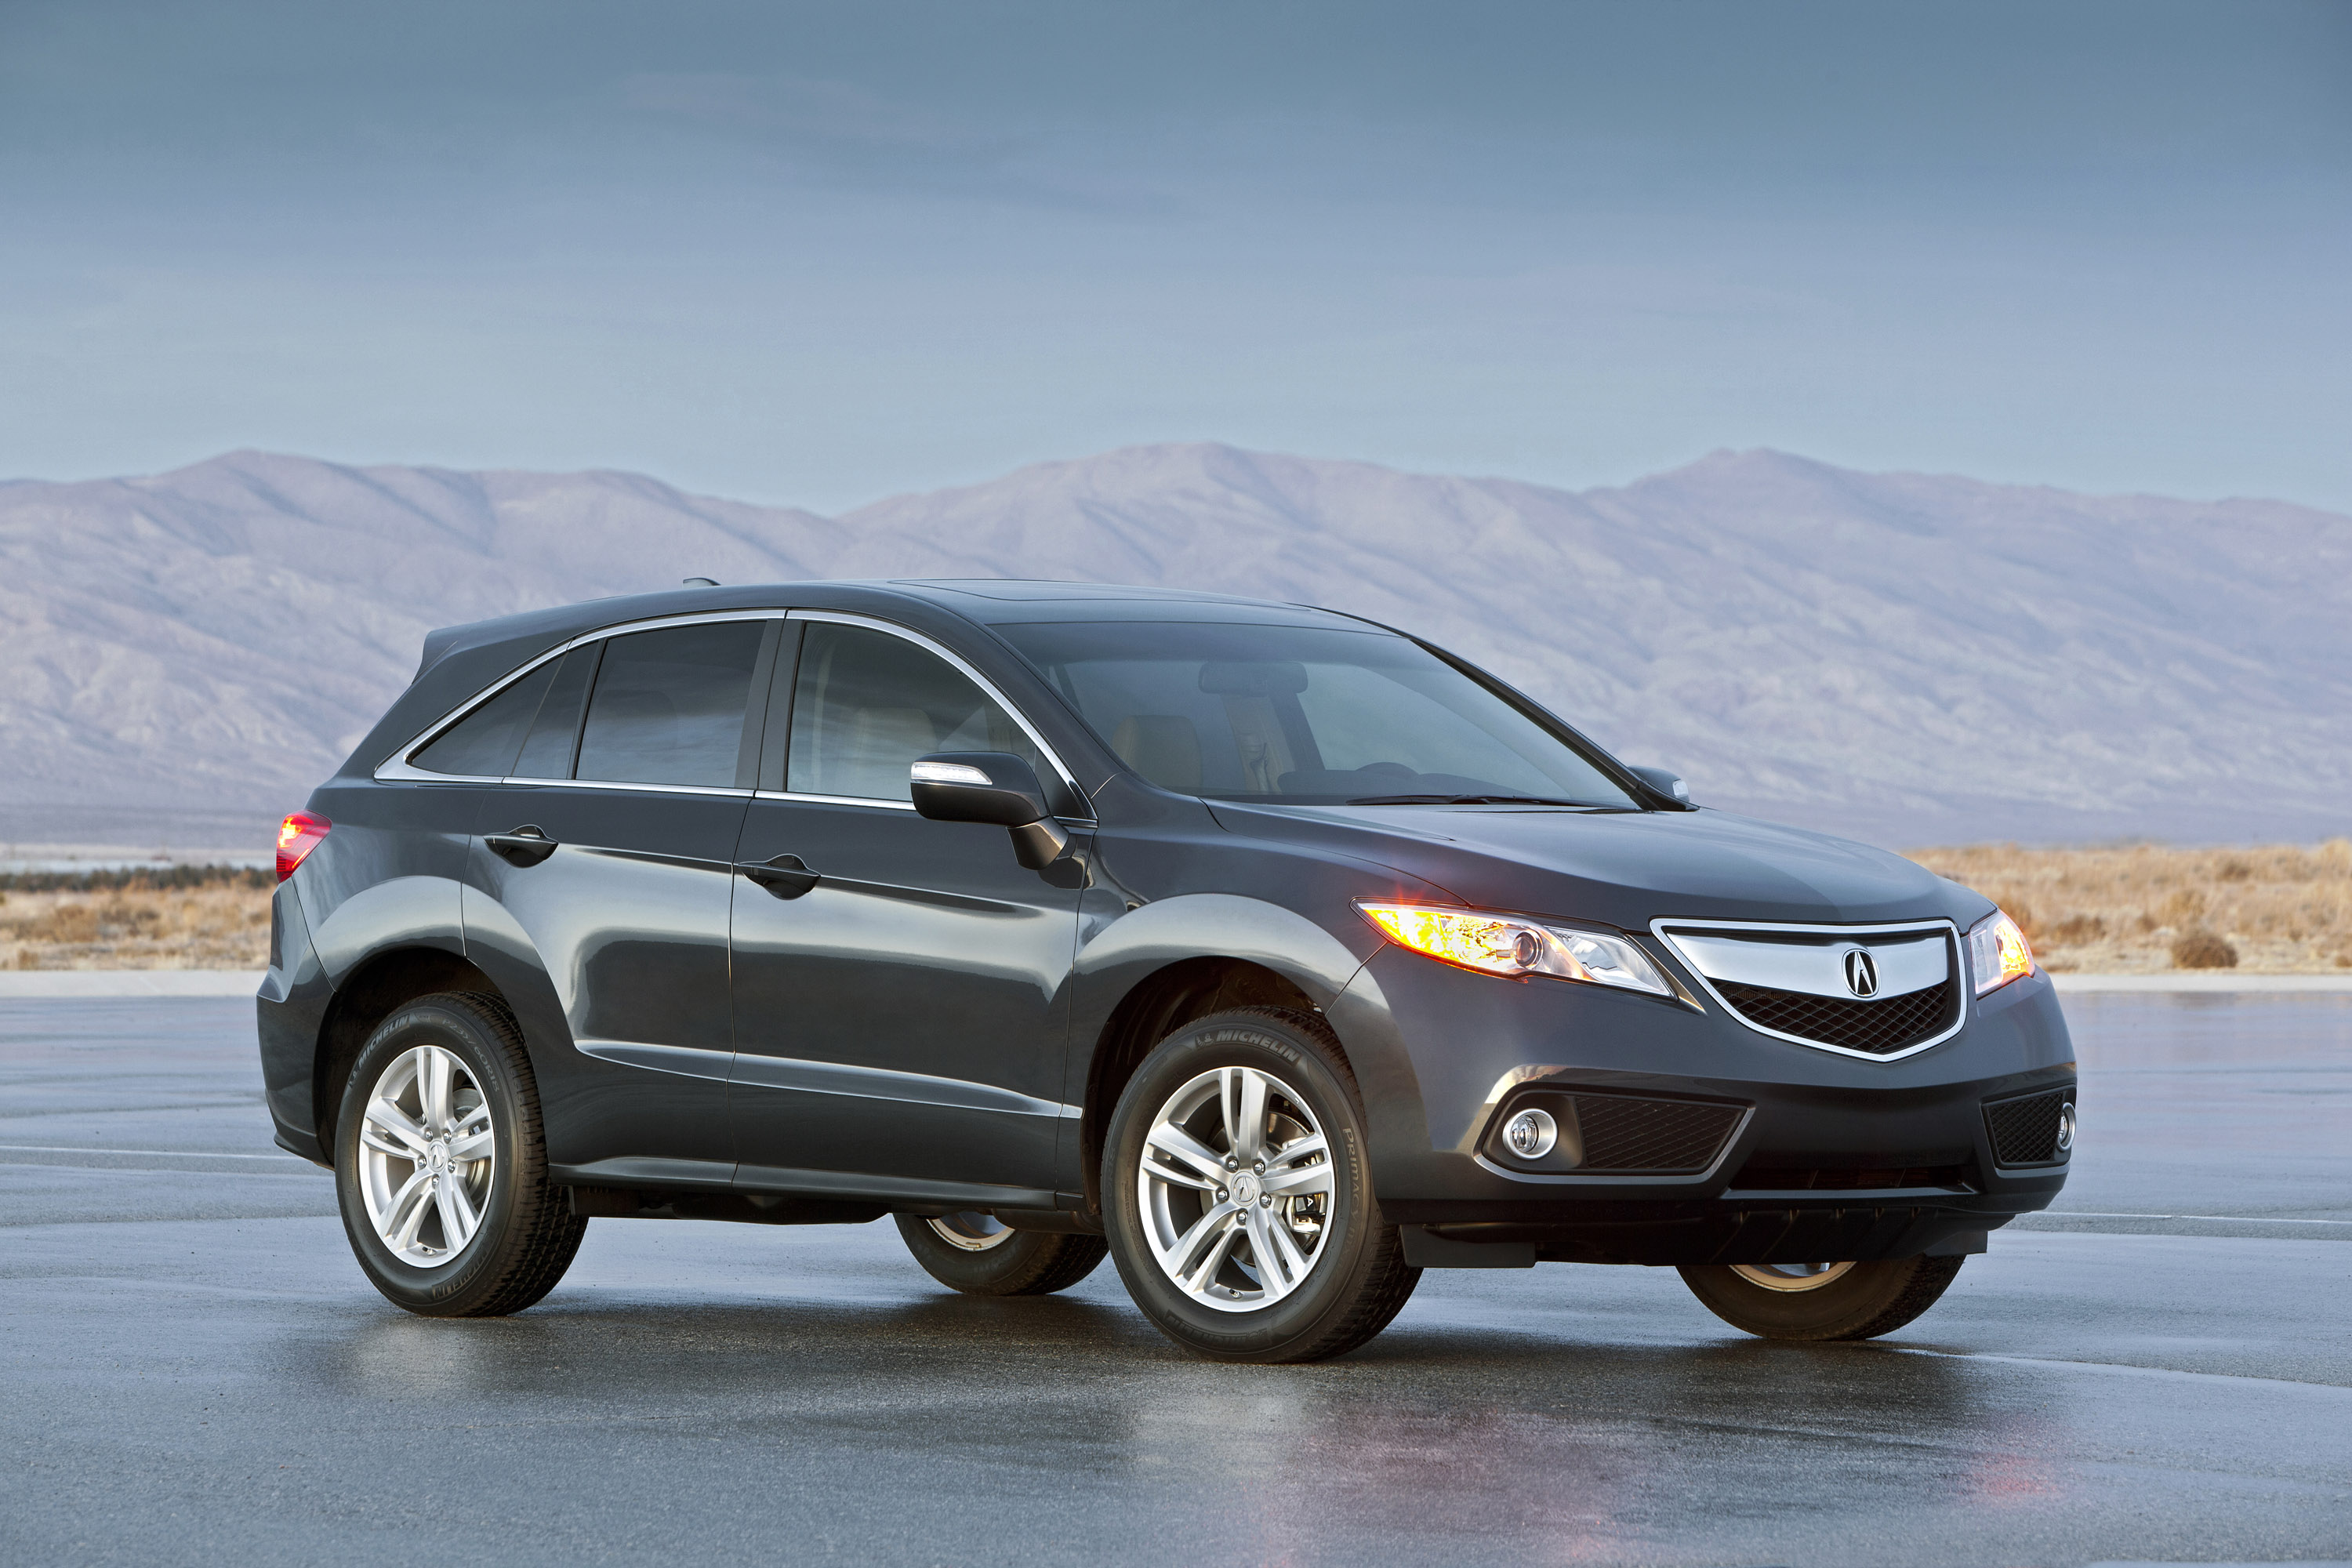 rdx gets ny auto show acura speed suv transmission redesigned